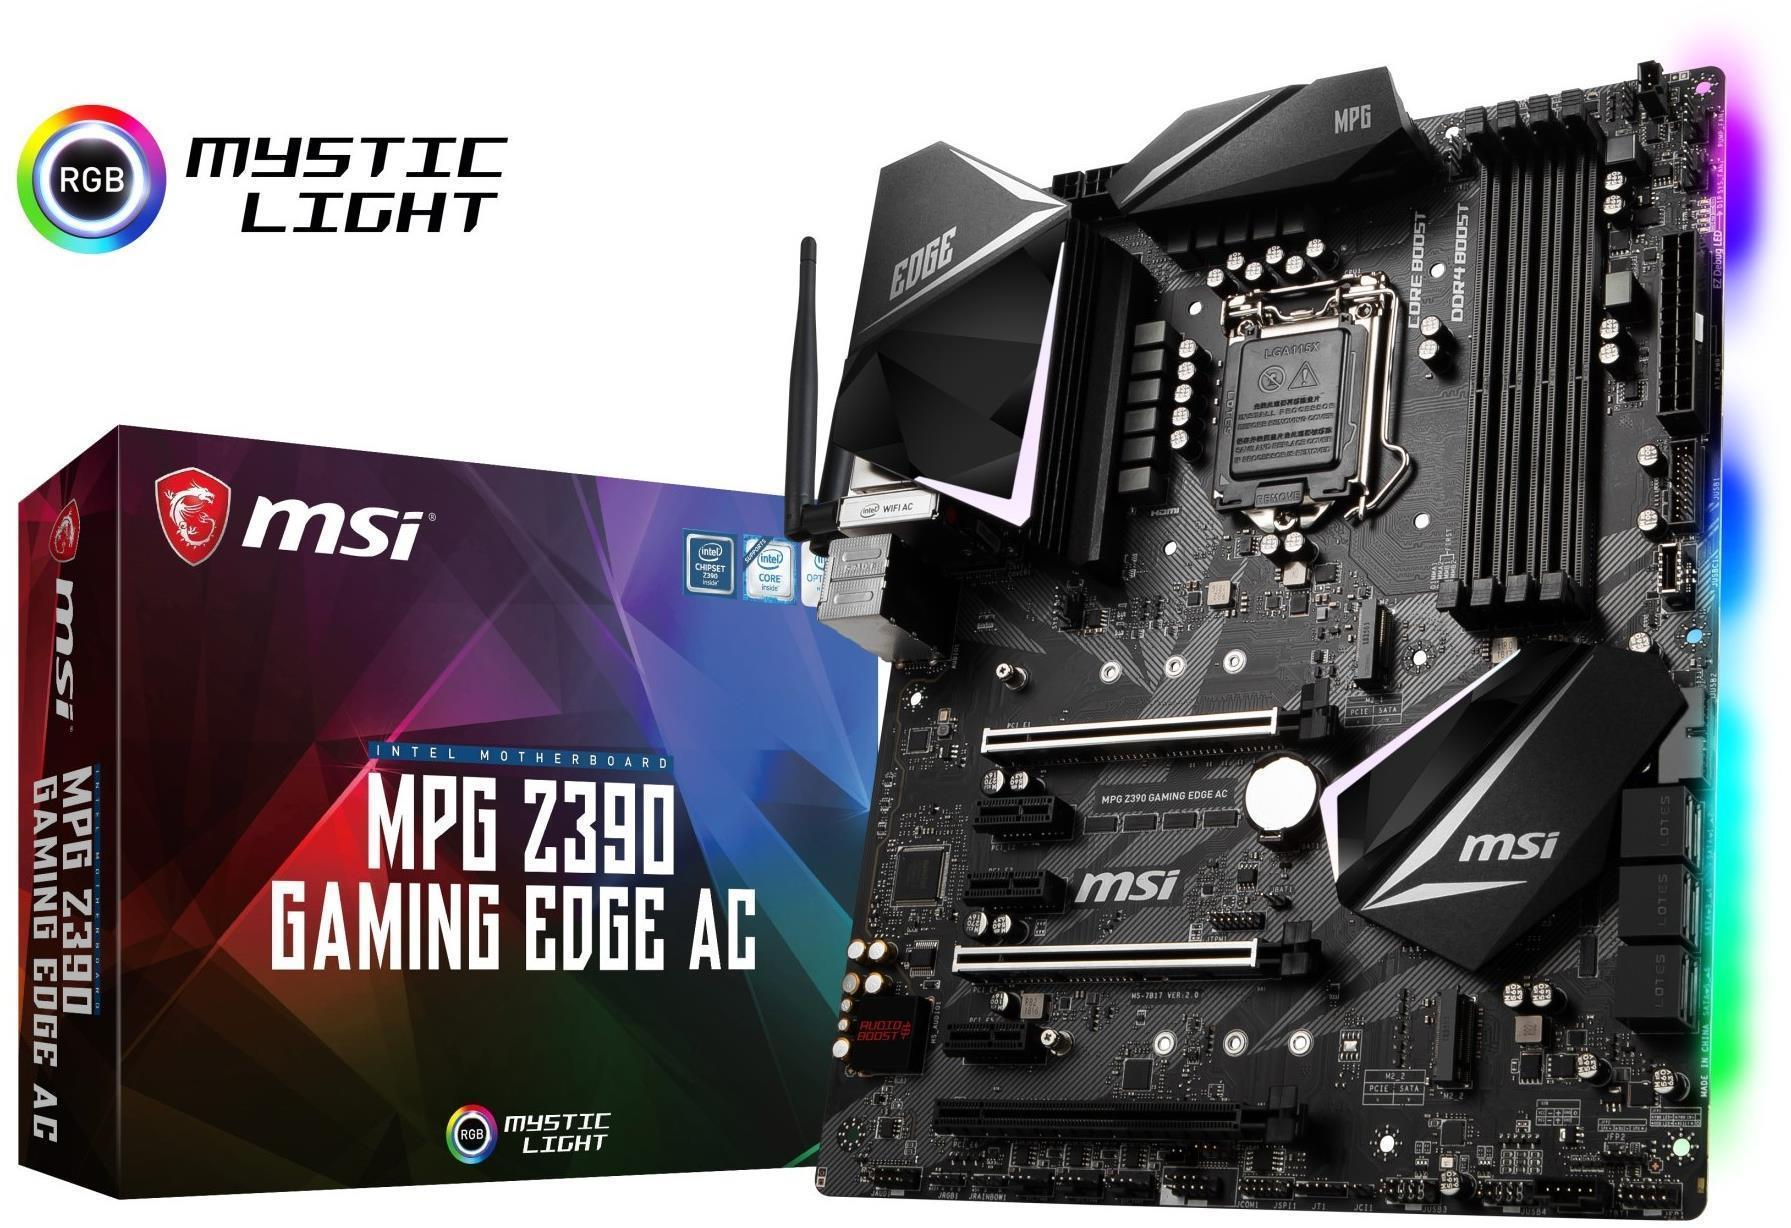 MSI - MPG Z390 GAMING EDGE AC